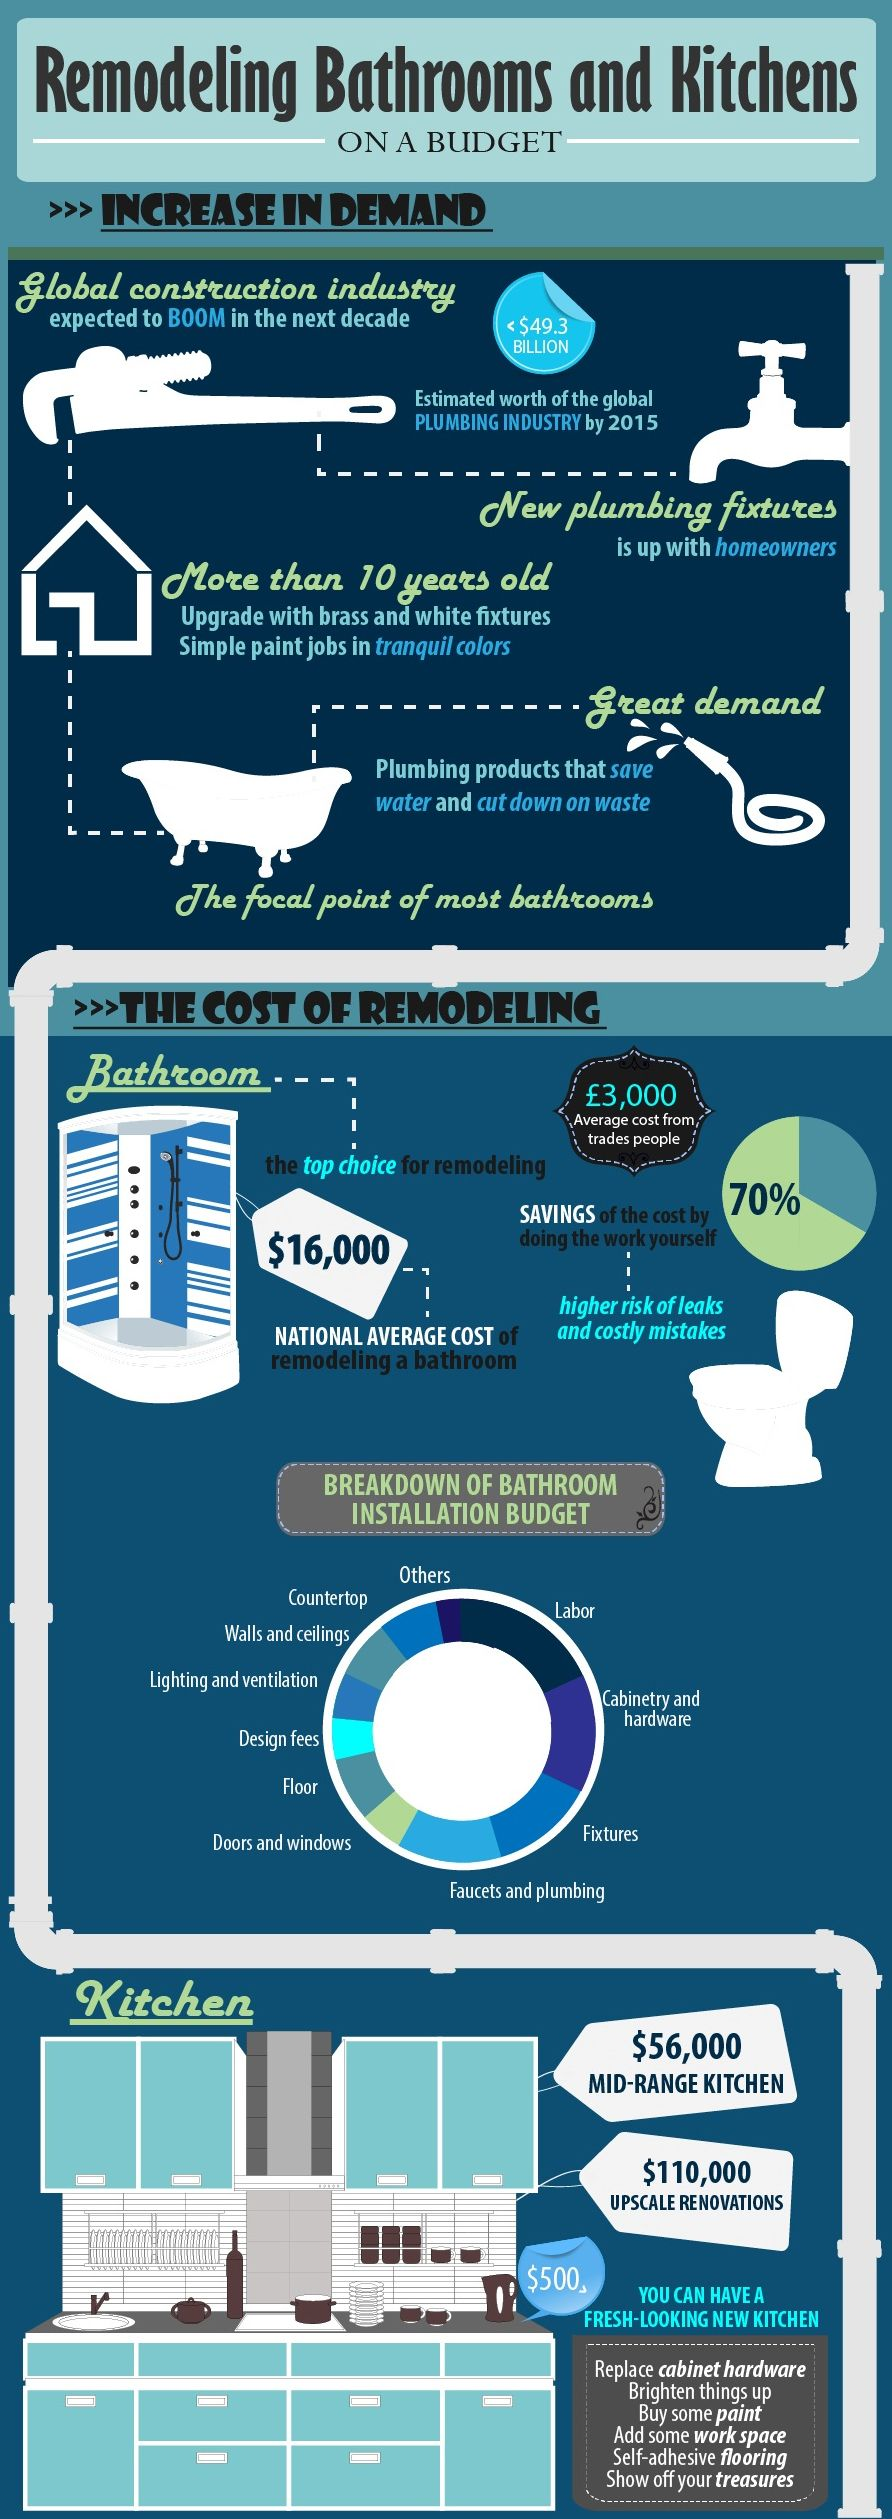 Castle Plumbing And Heating Provides This Interesting Infographic Custom Bathroom Remodel Return On Investment Inspiration